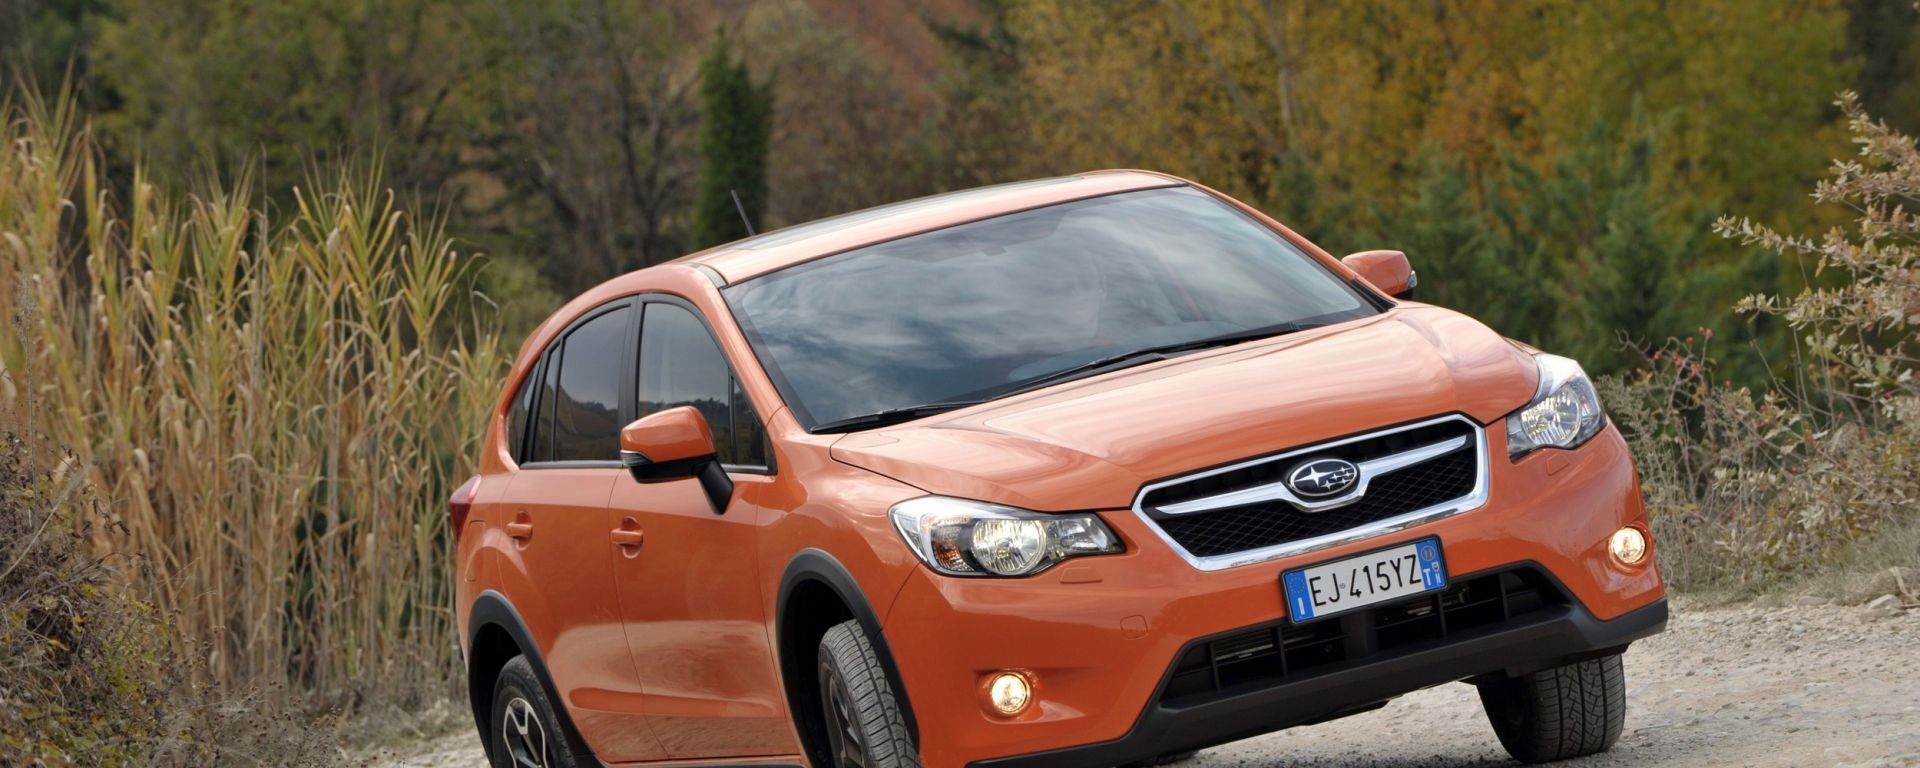 Subaru XV: ora il test anche in video